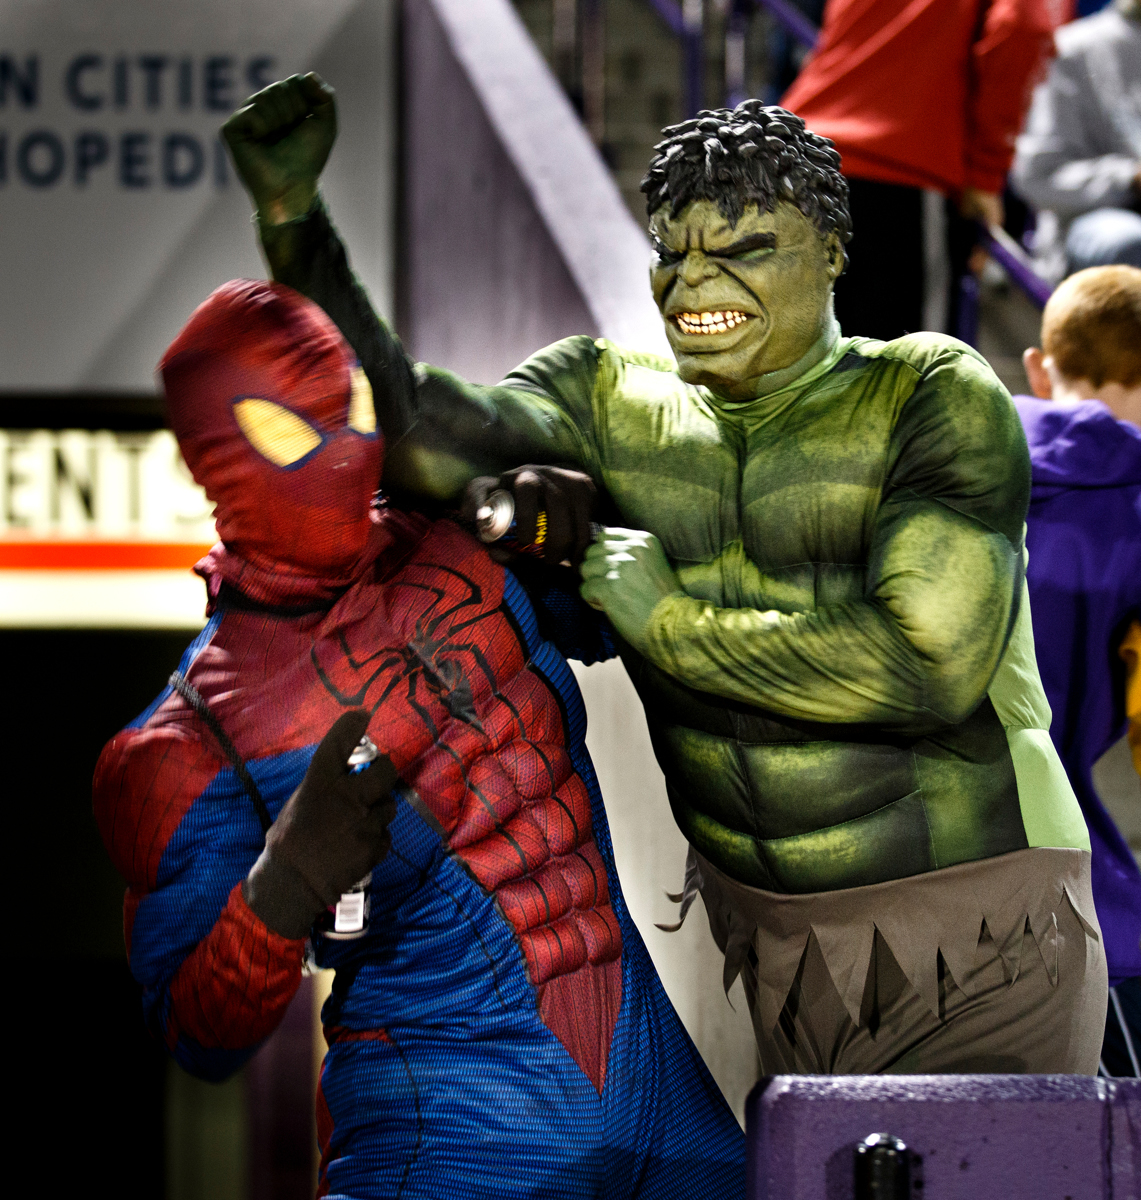 The Hulk and Spiderman fight for their favorite teams. (Photo by Mike Ekern '02)